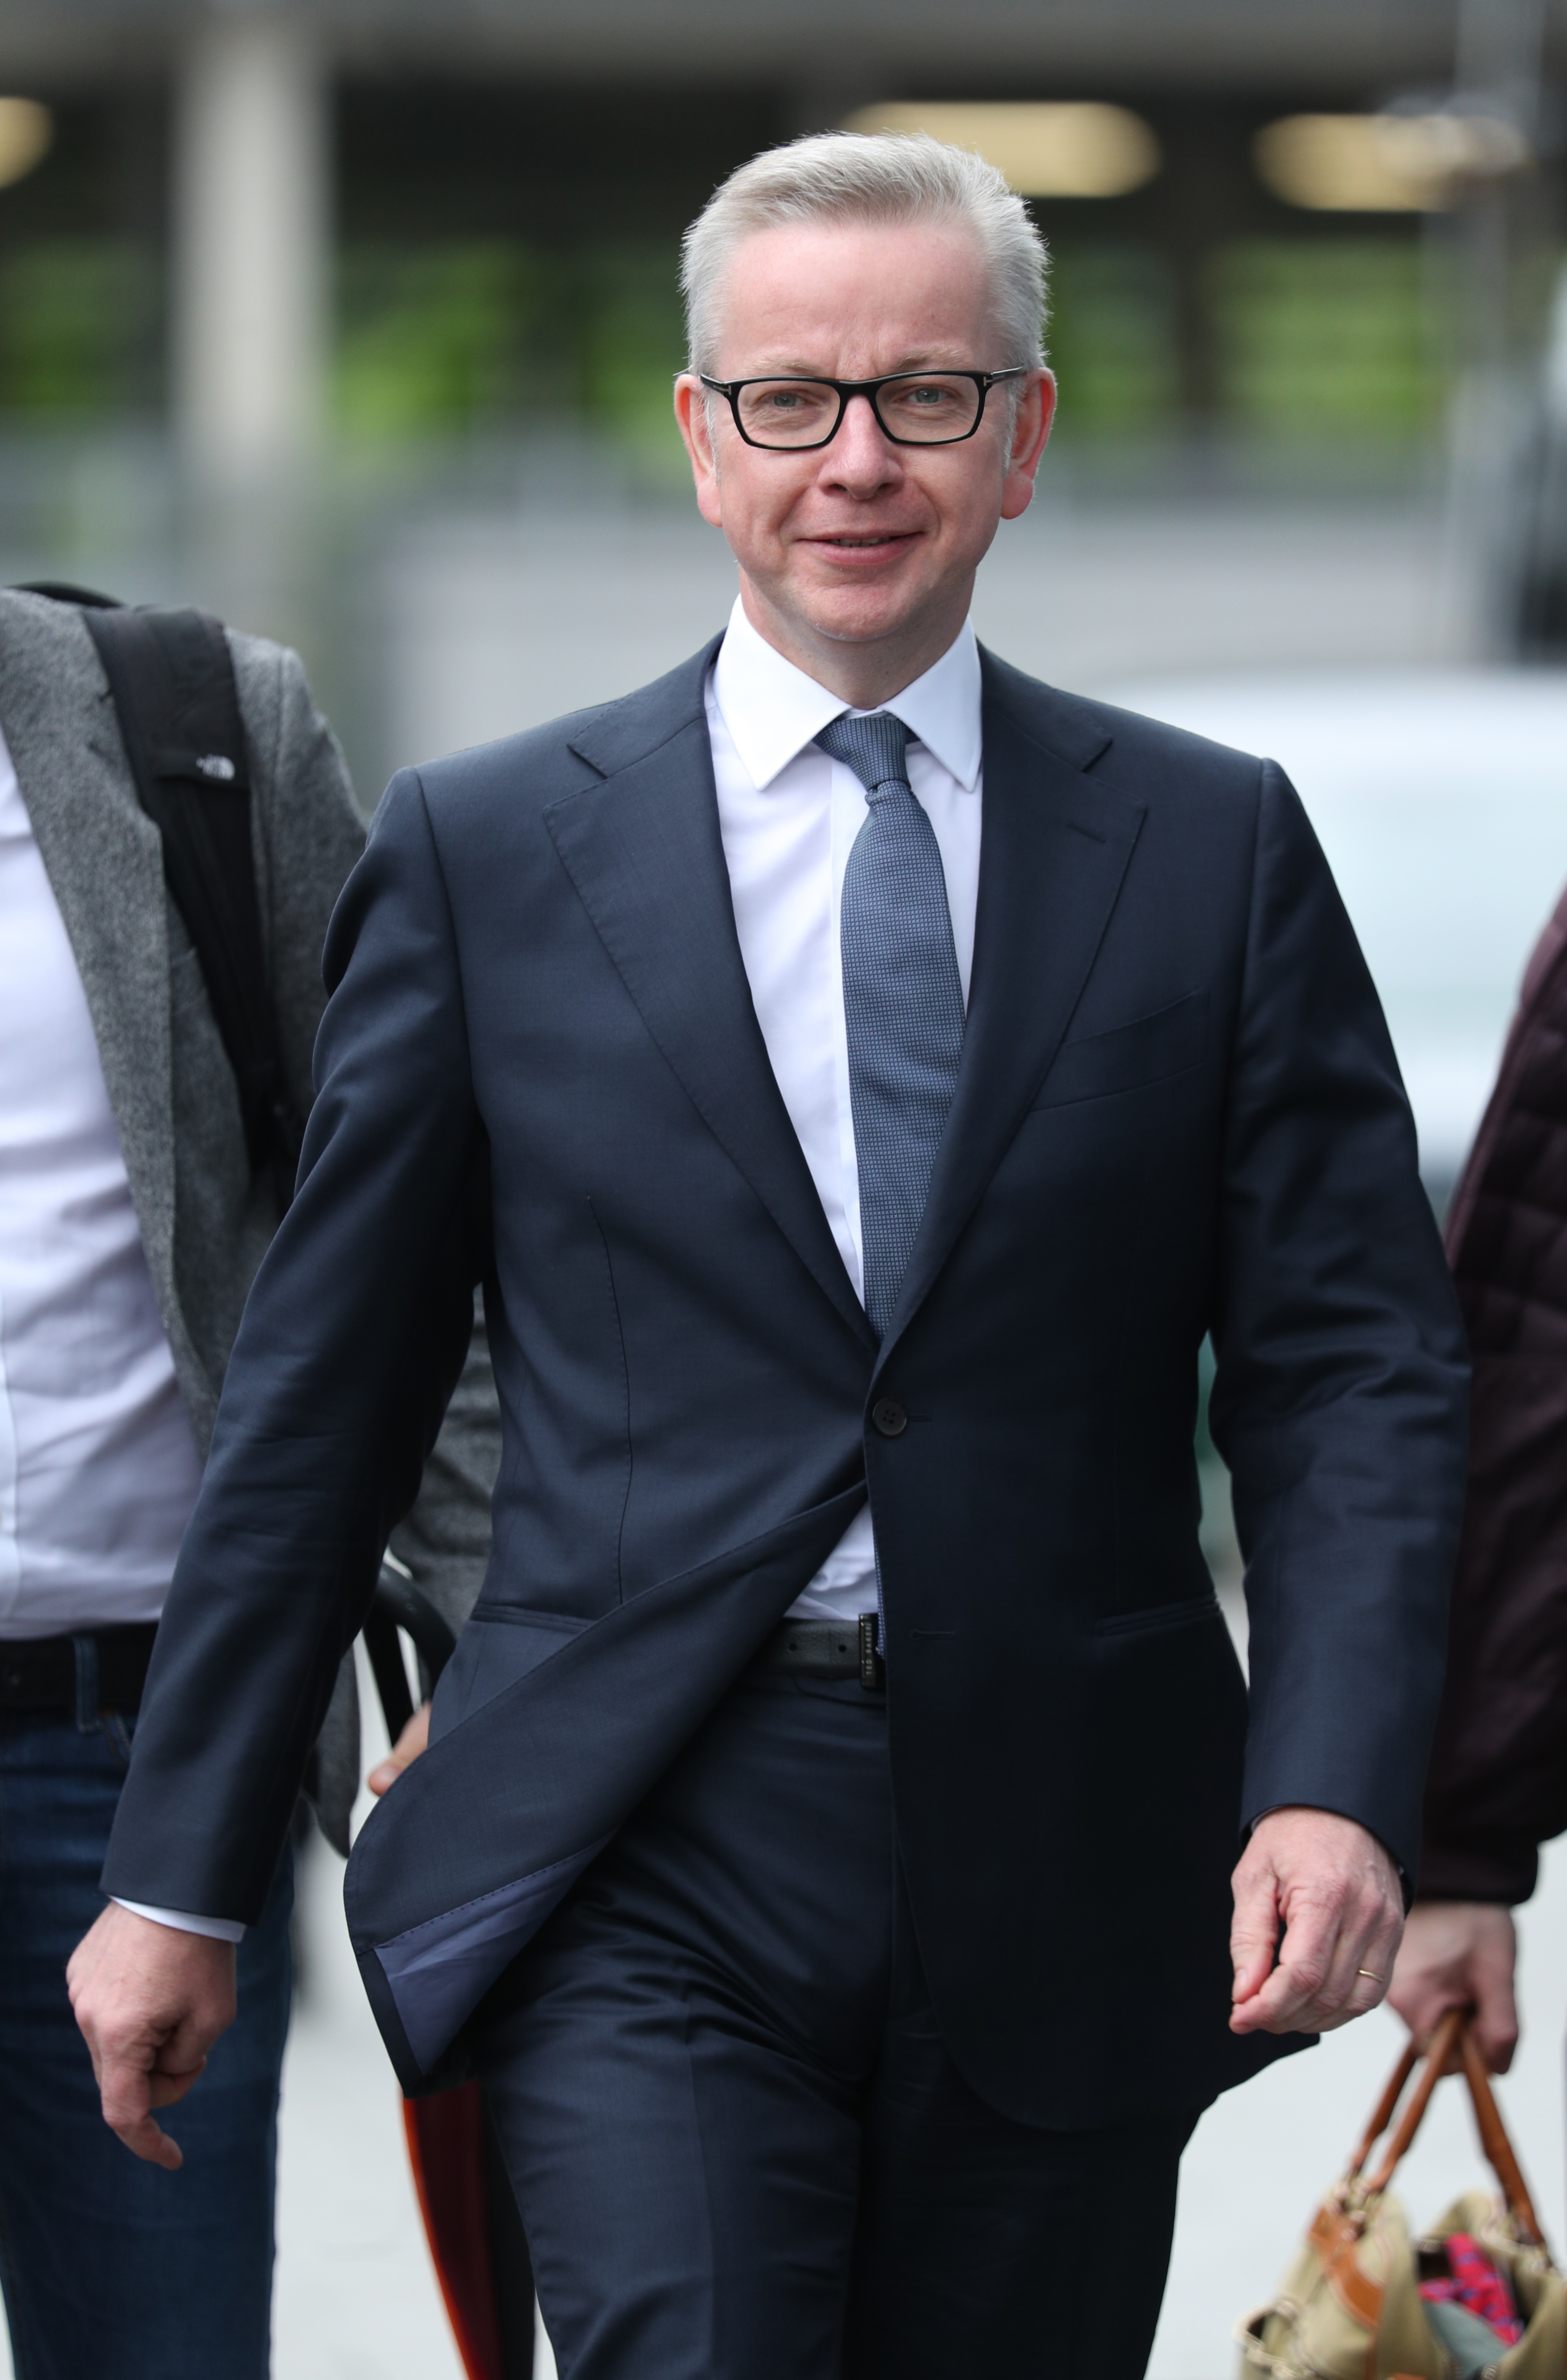 Conservative party leadership contender Michael Gove arrives at Here East studios in Stratford, east London, ahead of the live television debate for the candidates for leadership of the Conservative party, hosted by Channel 4.